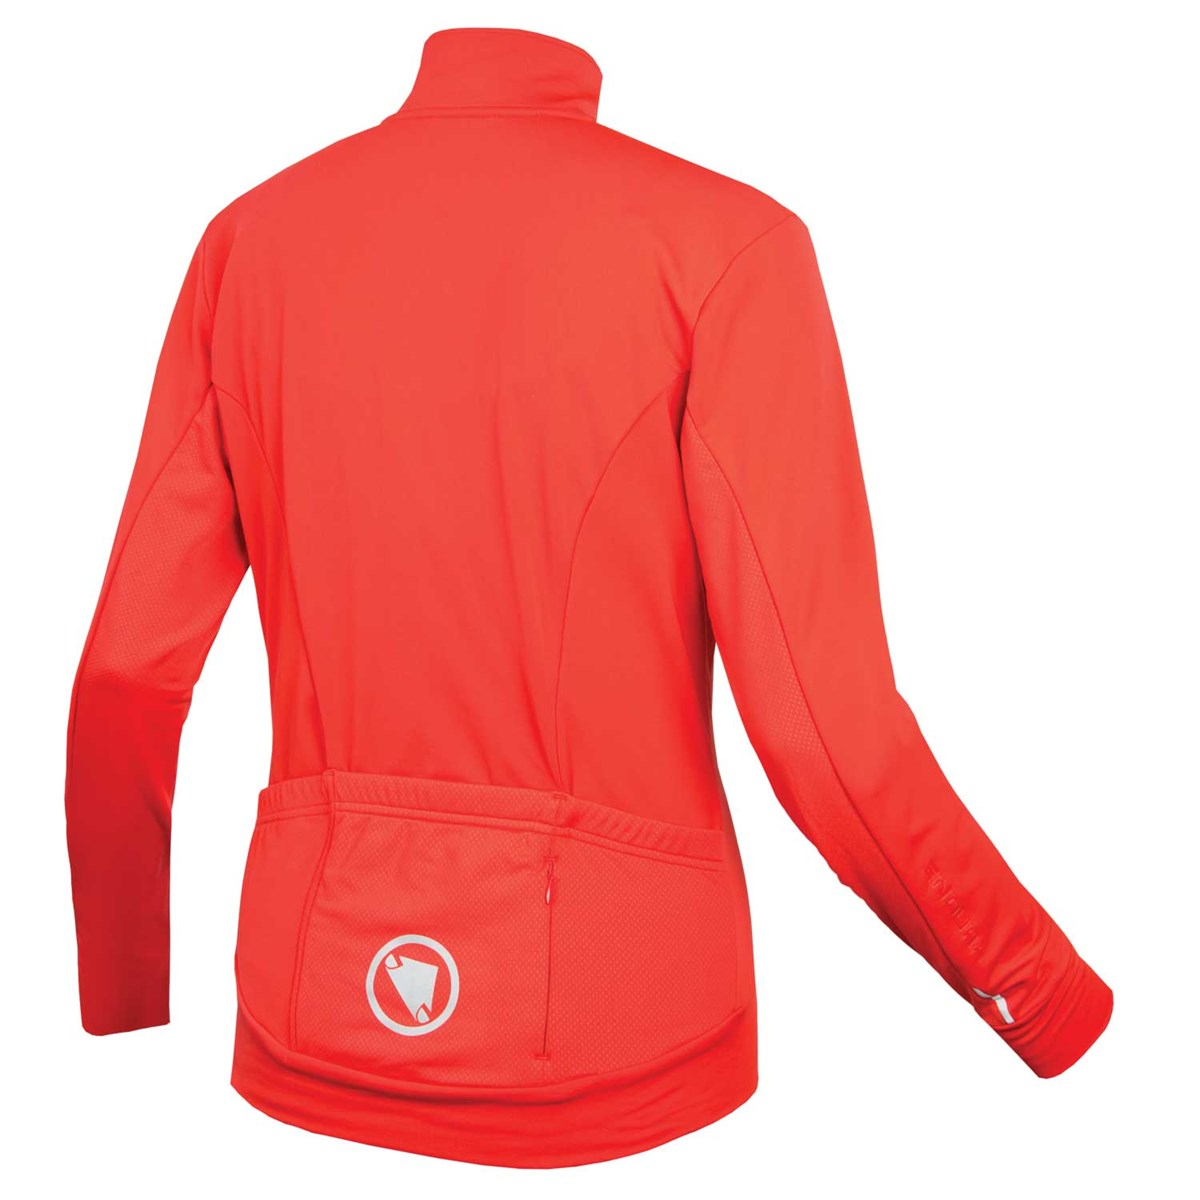 6f72d0640 Endura Womens Xtract Roubaix Coral Red Long Sleeve Cycling Jersey £59.99